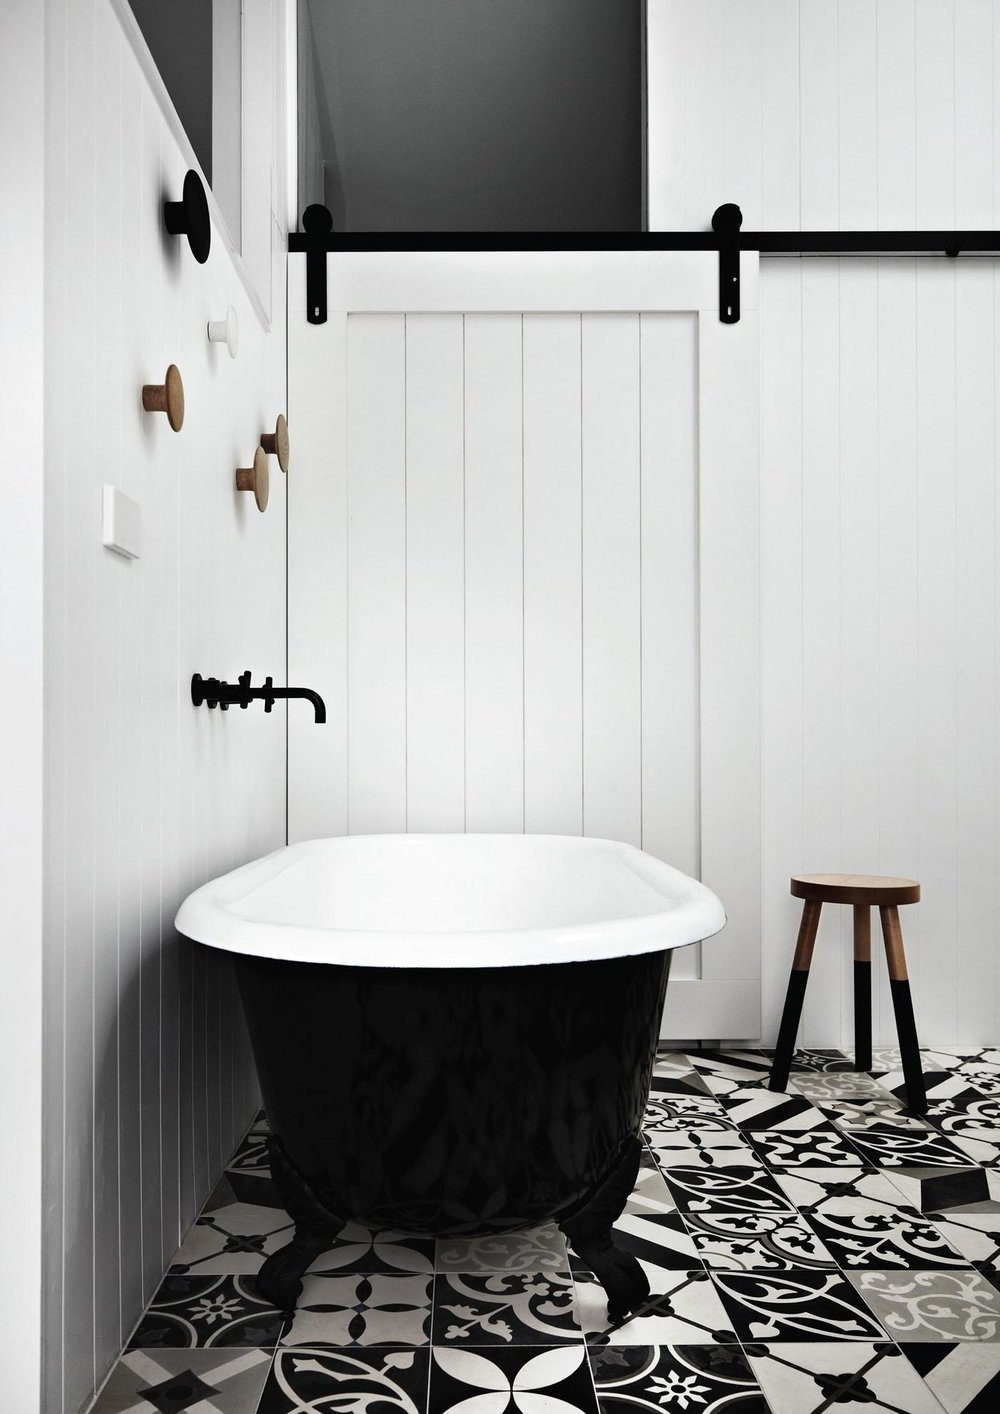 a-chic-classic-black-and-white-bathroom-with-patterned-flooring-and-black-bathtub-also-white-wooden-sliding-door.jpg